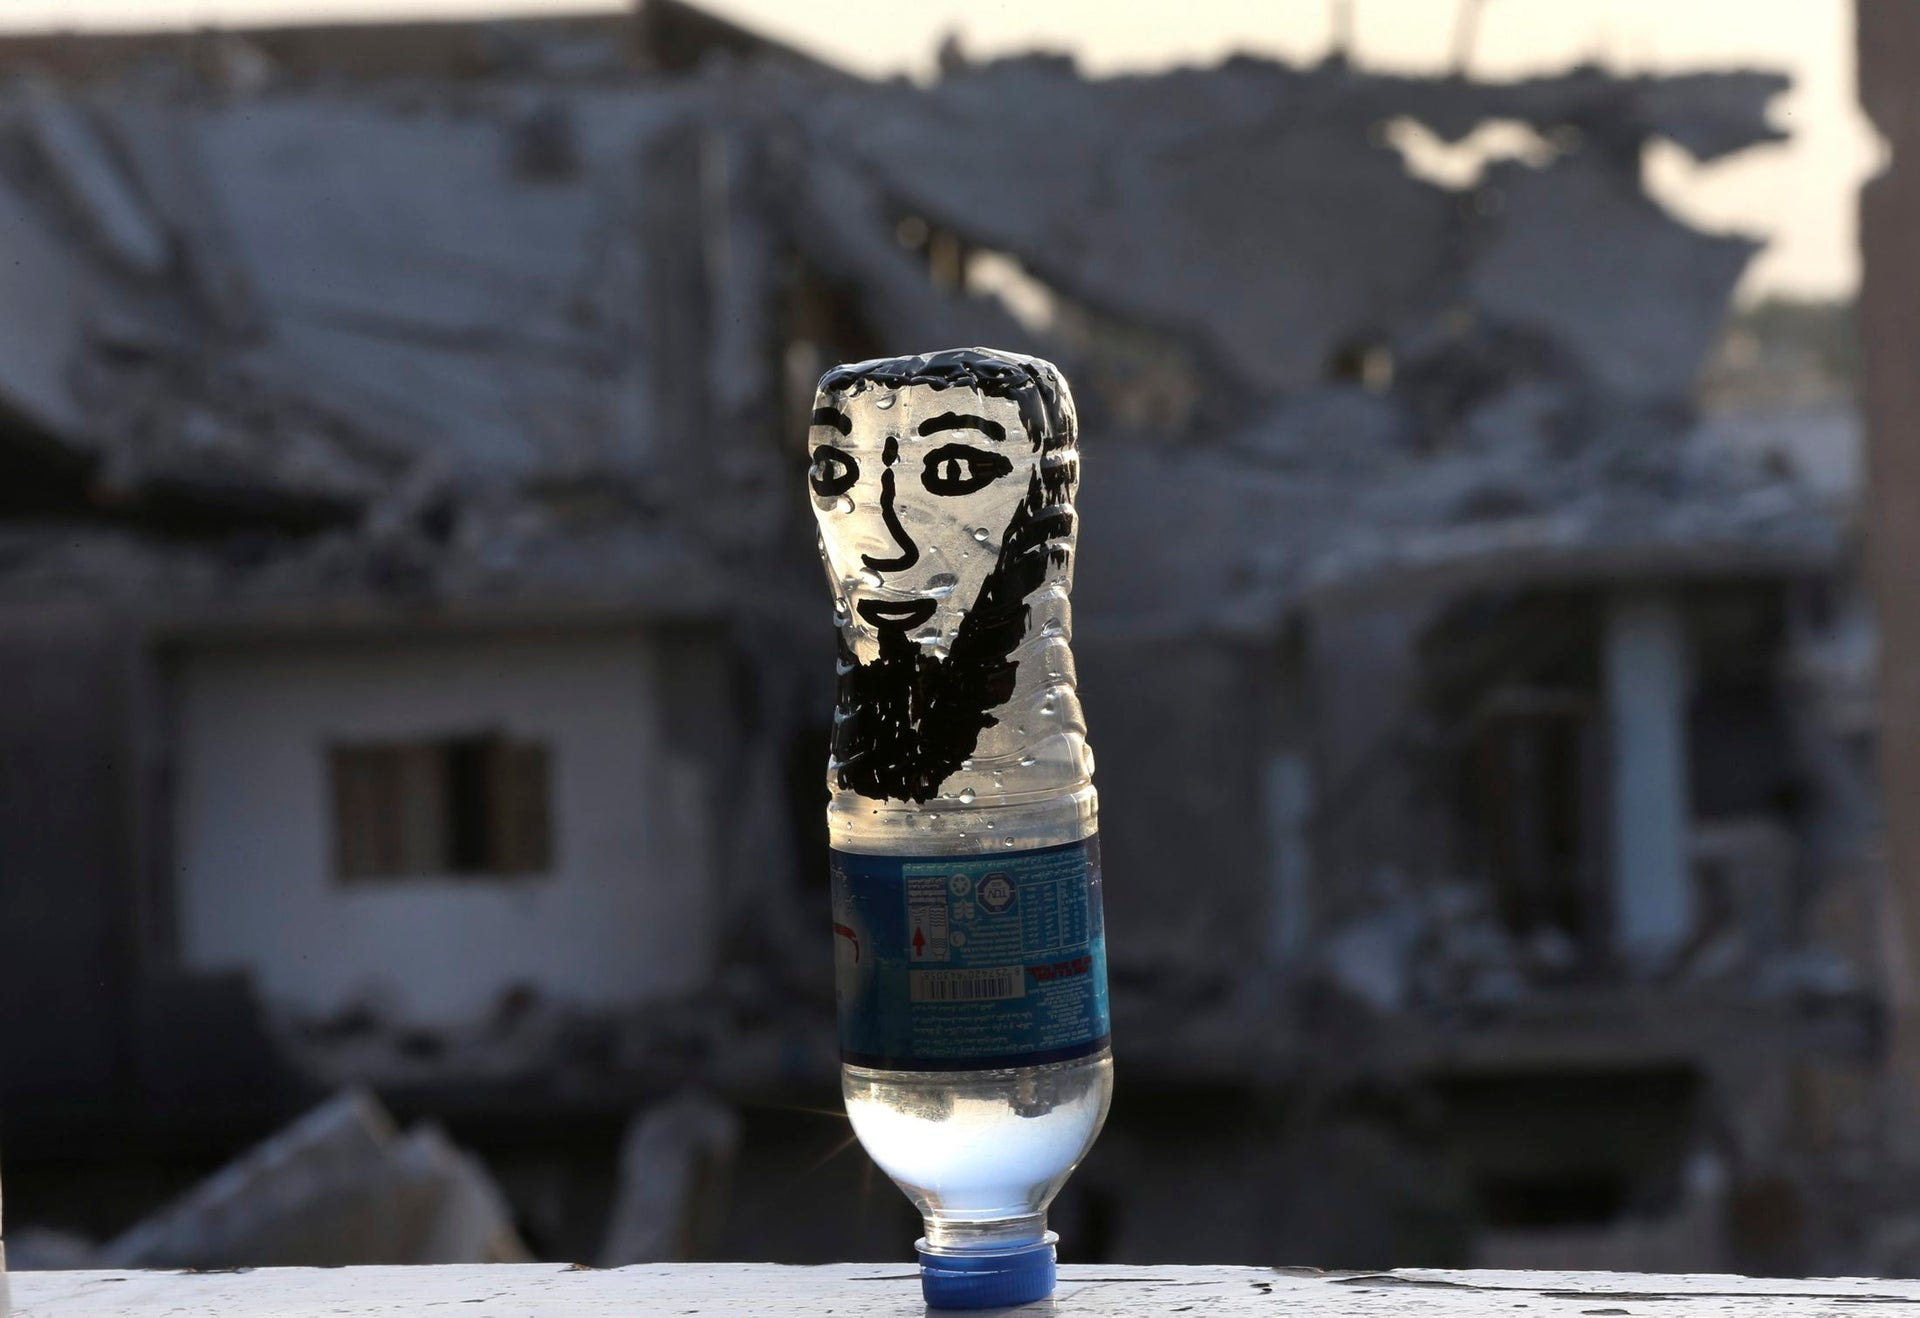 A water bottle painted with a face to represent an Islamic State fighter, left by U.S.-backed Syrian Democratic Forces fighters on a window sill, on the front line, in Raqqa city, northeast Syria, Thursday, July 27, 2017.